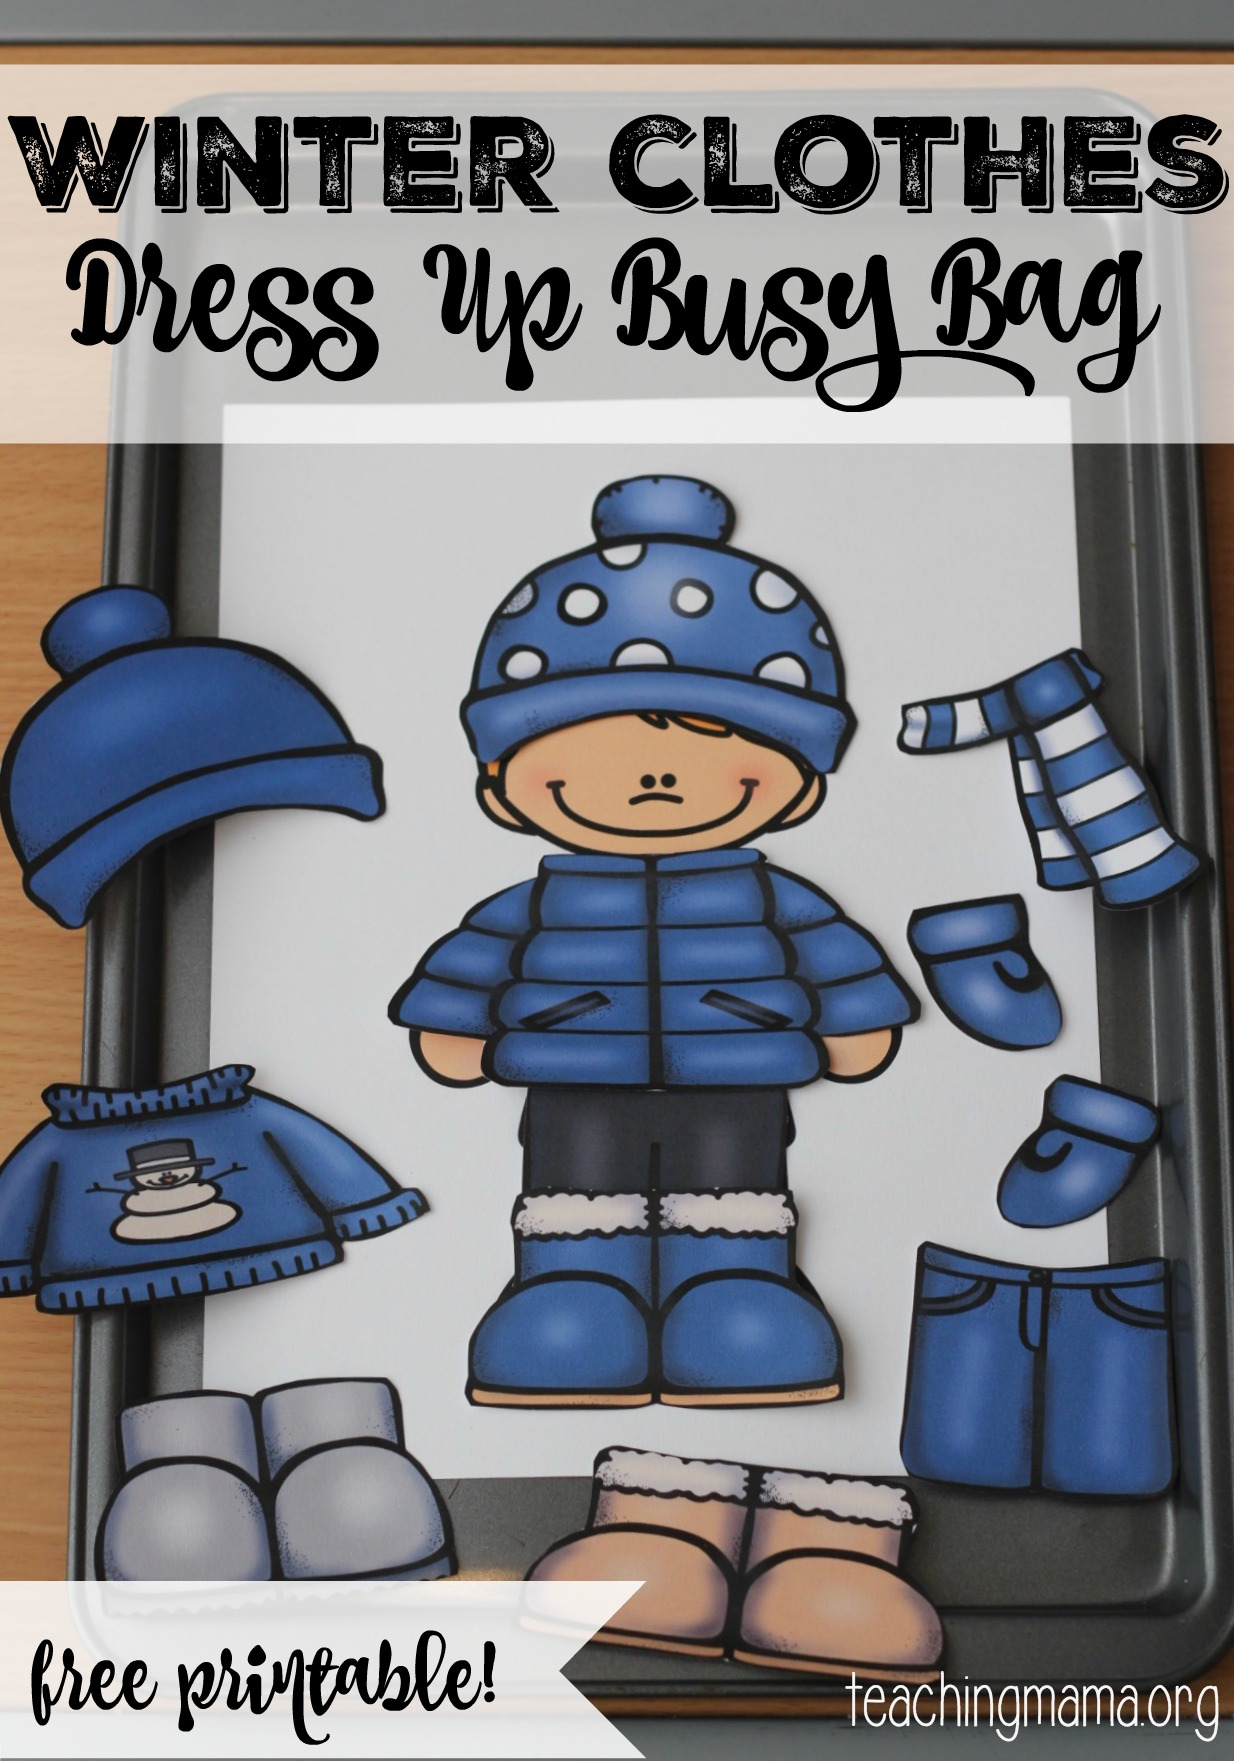 ... hats, scarves, gloves, sweaters, pants, coats, snowsuits, and boots